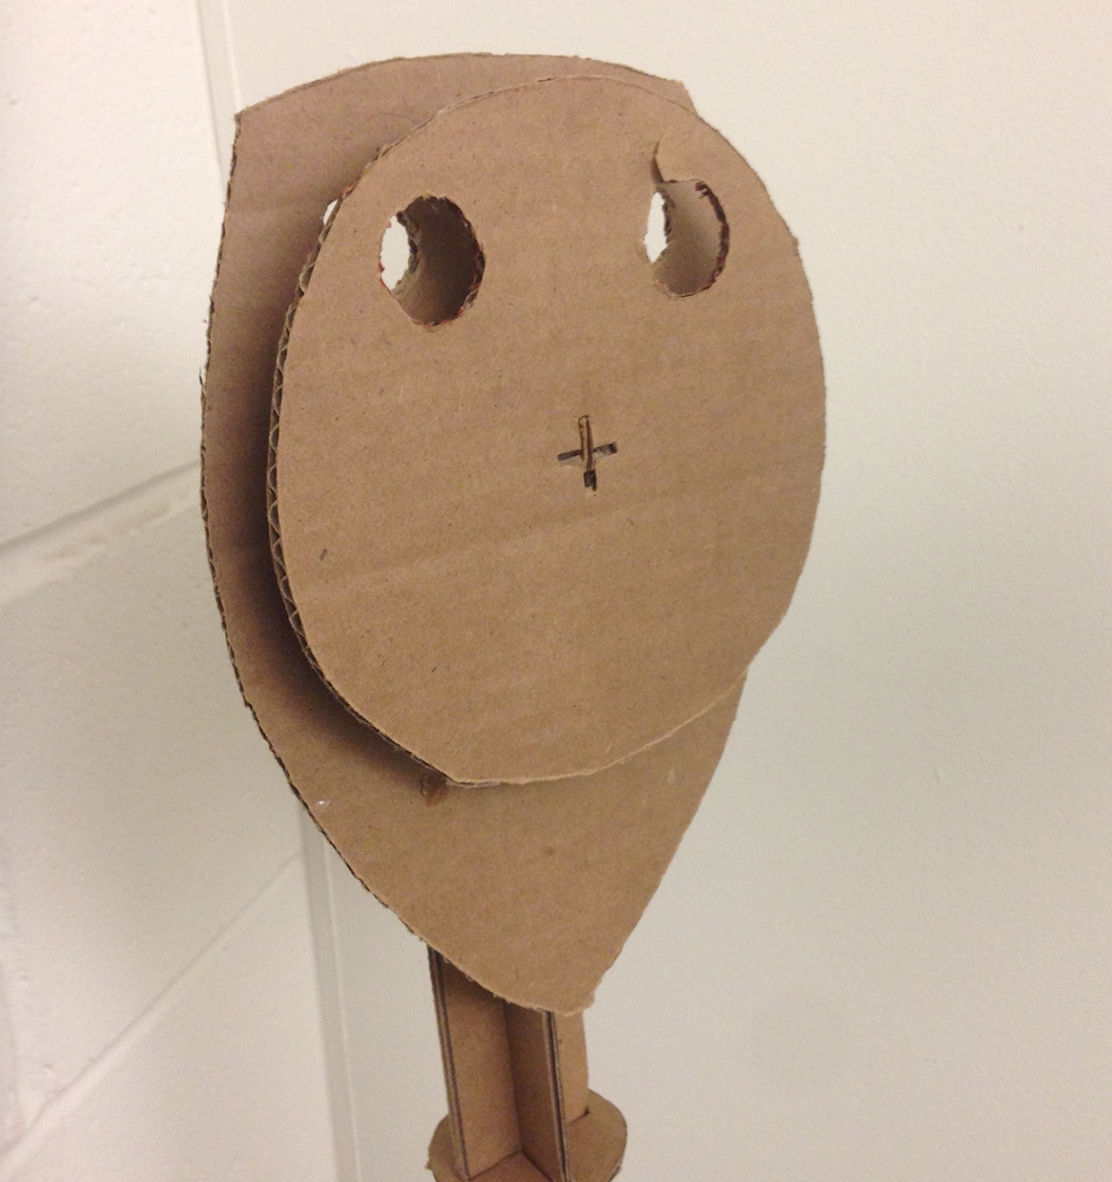 Initial mock-ups of the ObservaStory were made using cardboard.